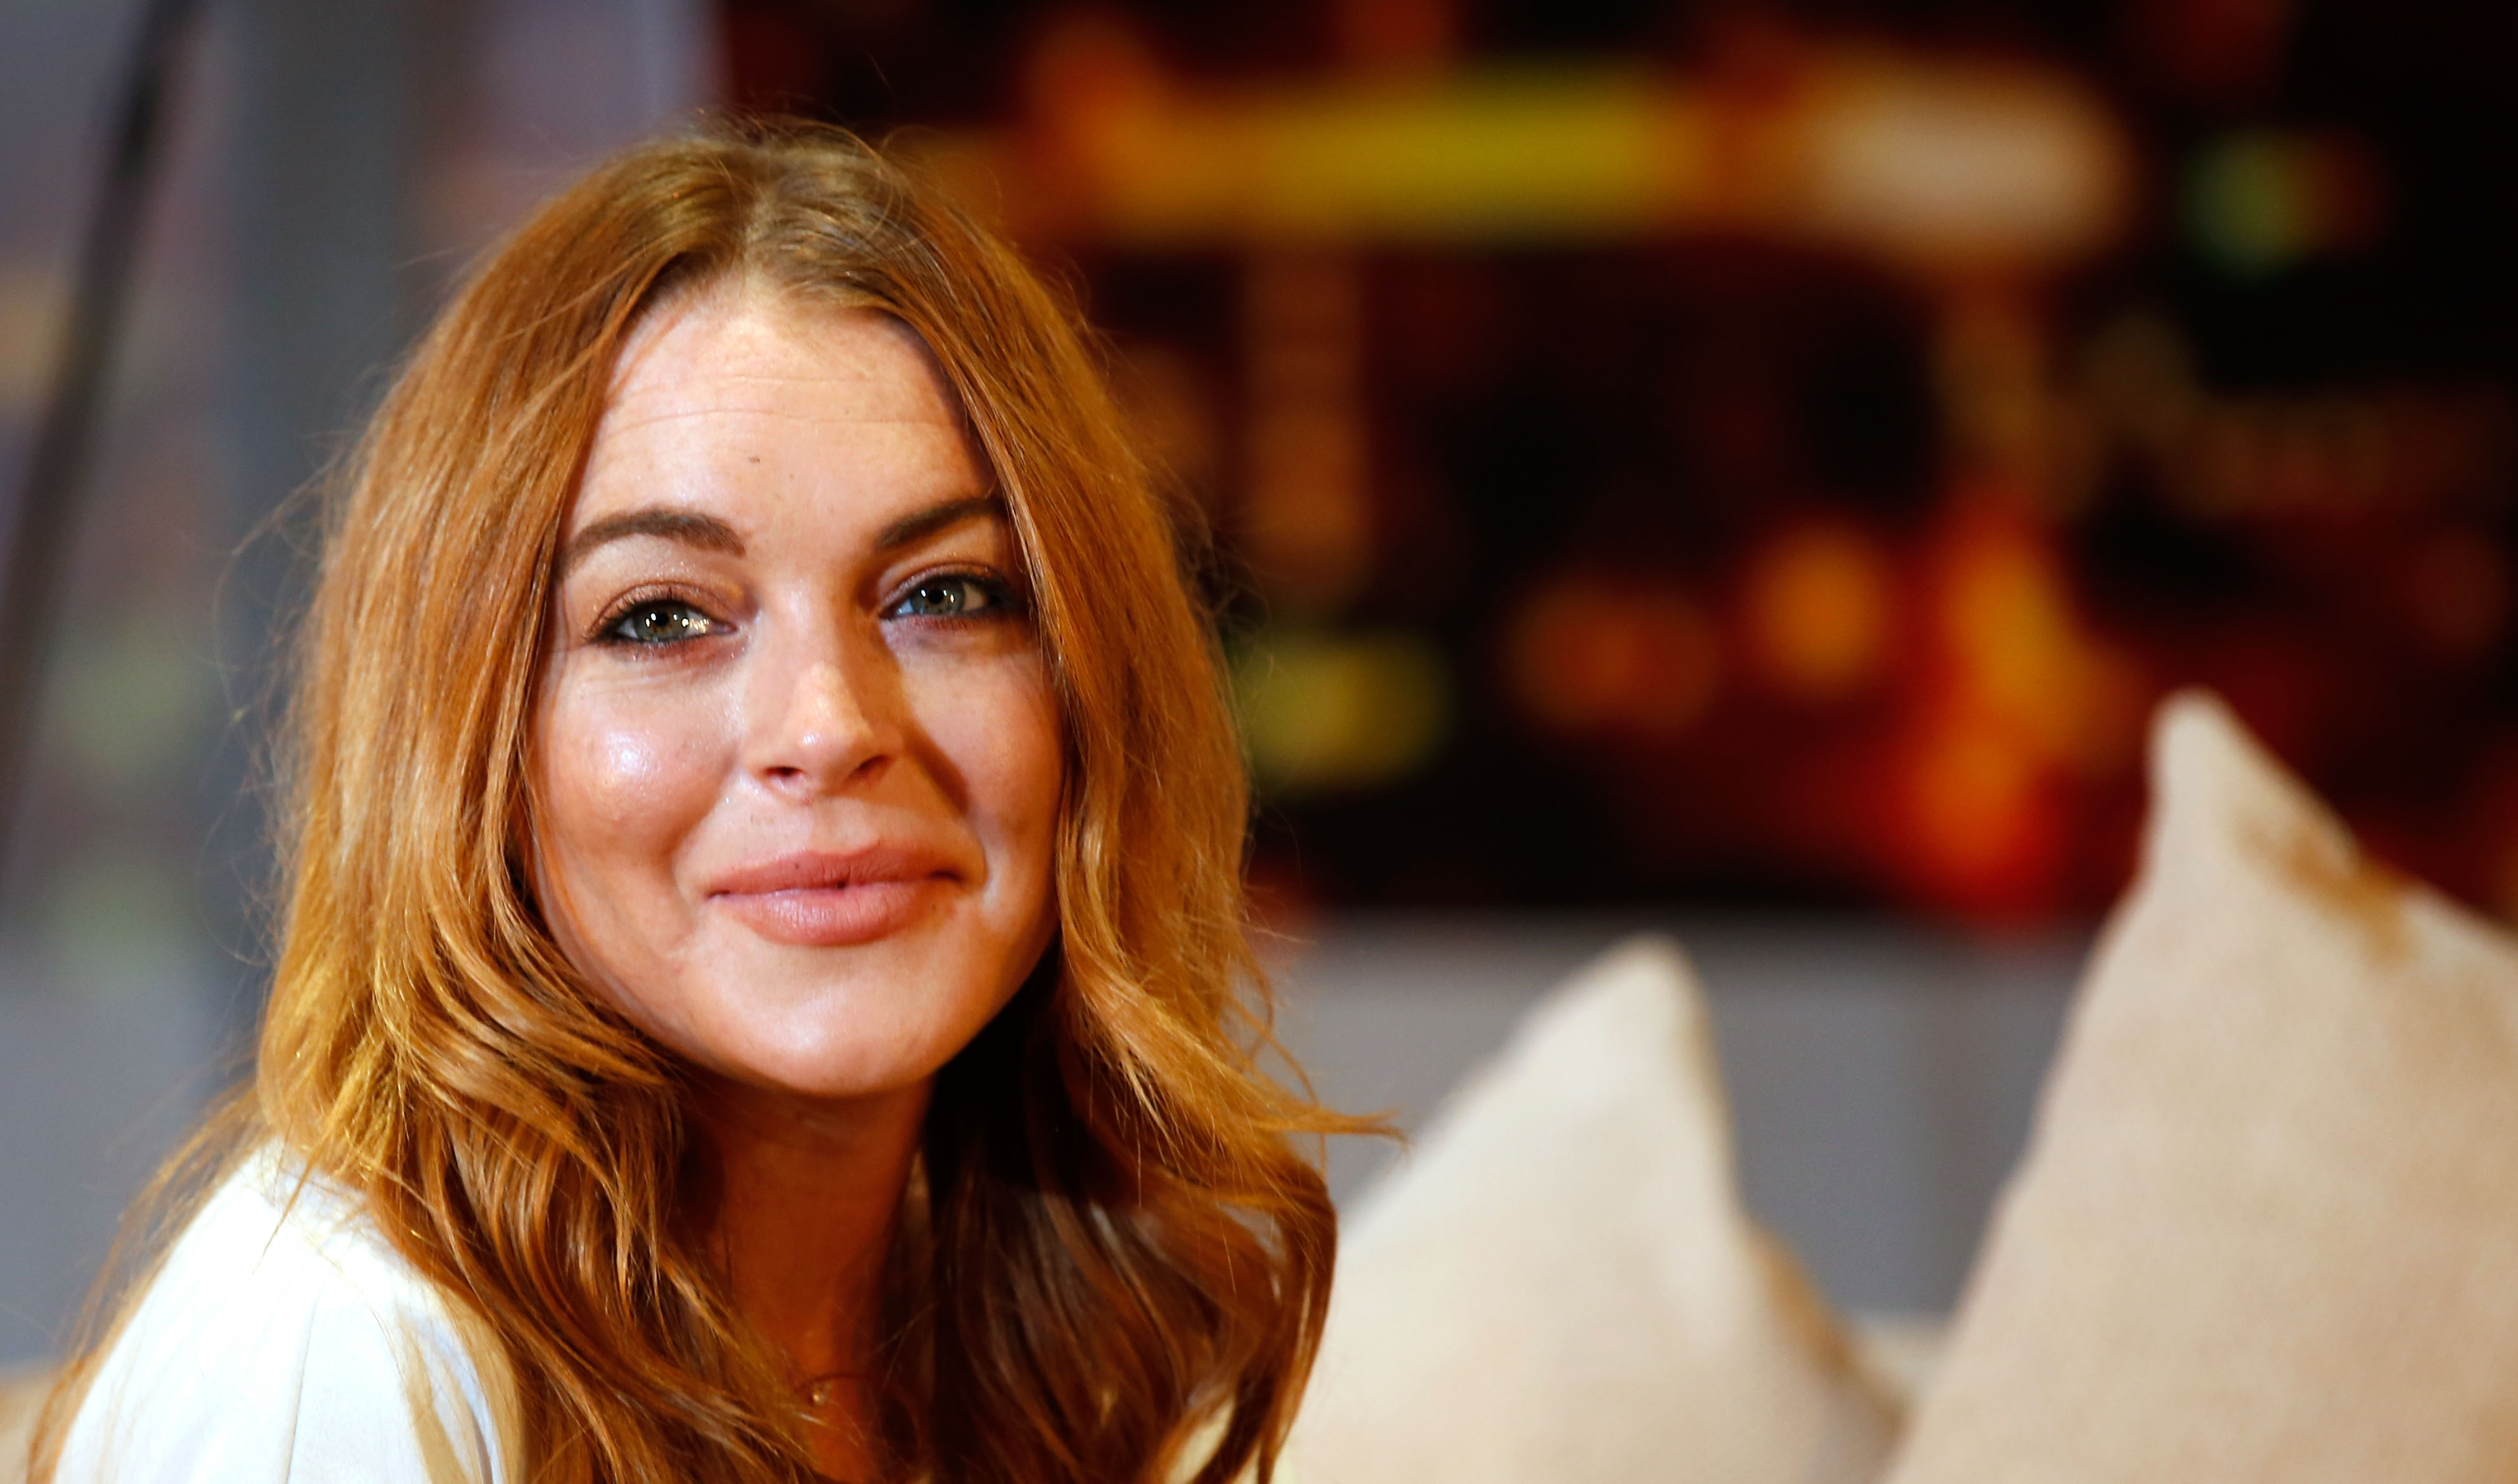 Lindsay Lohan performs during a photocall for  Speed The Plow  at Playhouse Theatre on September 30, 2014 in London, England.